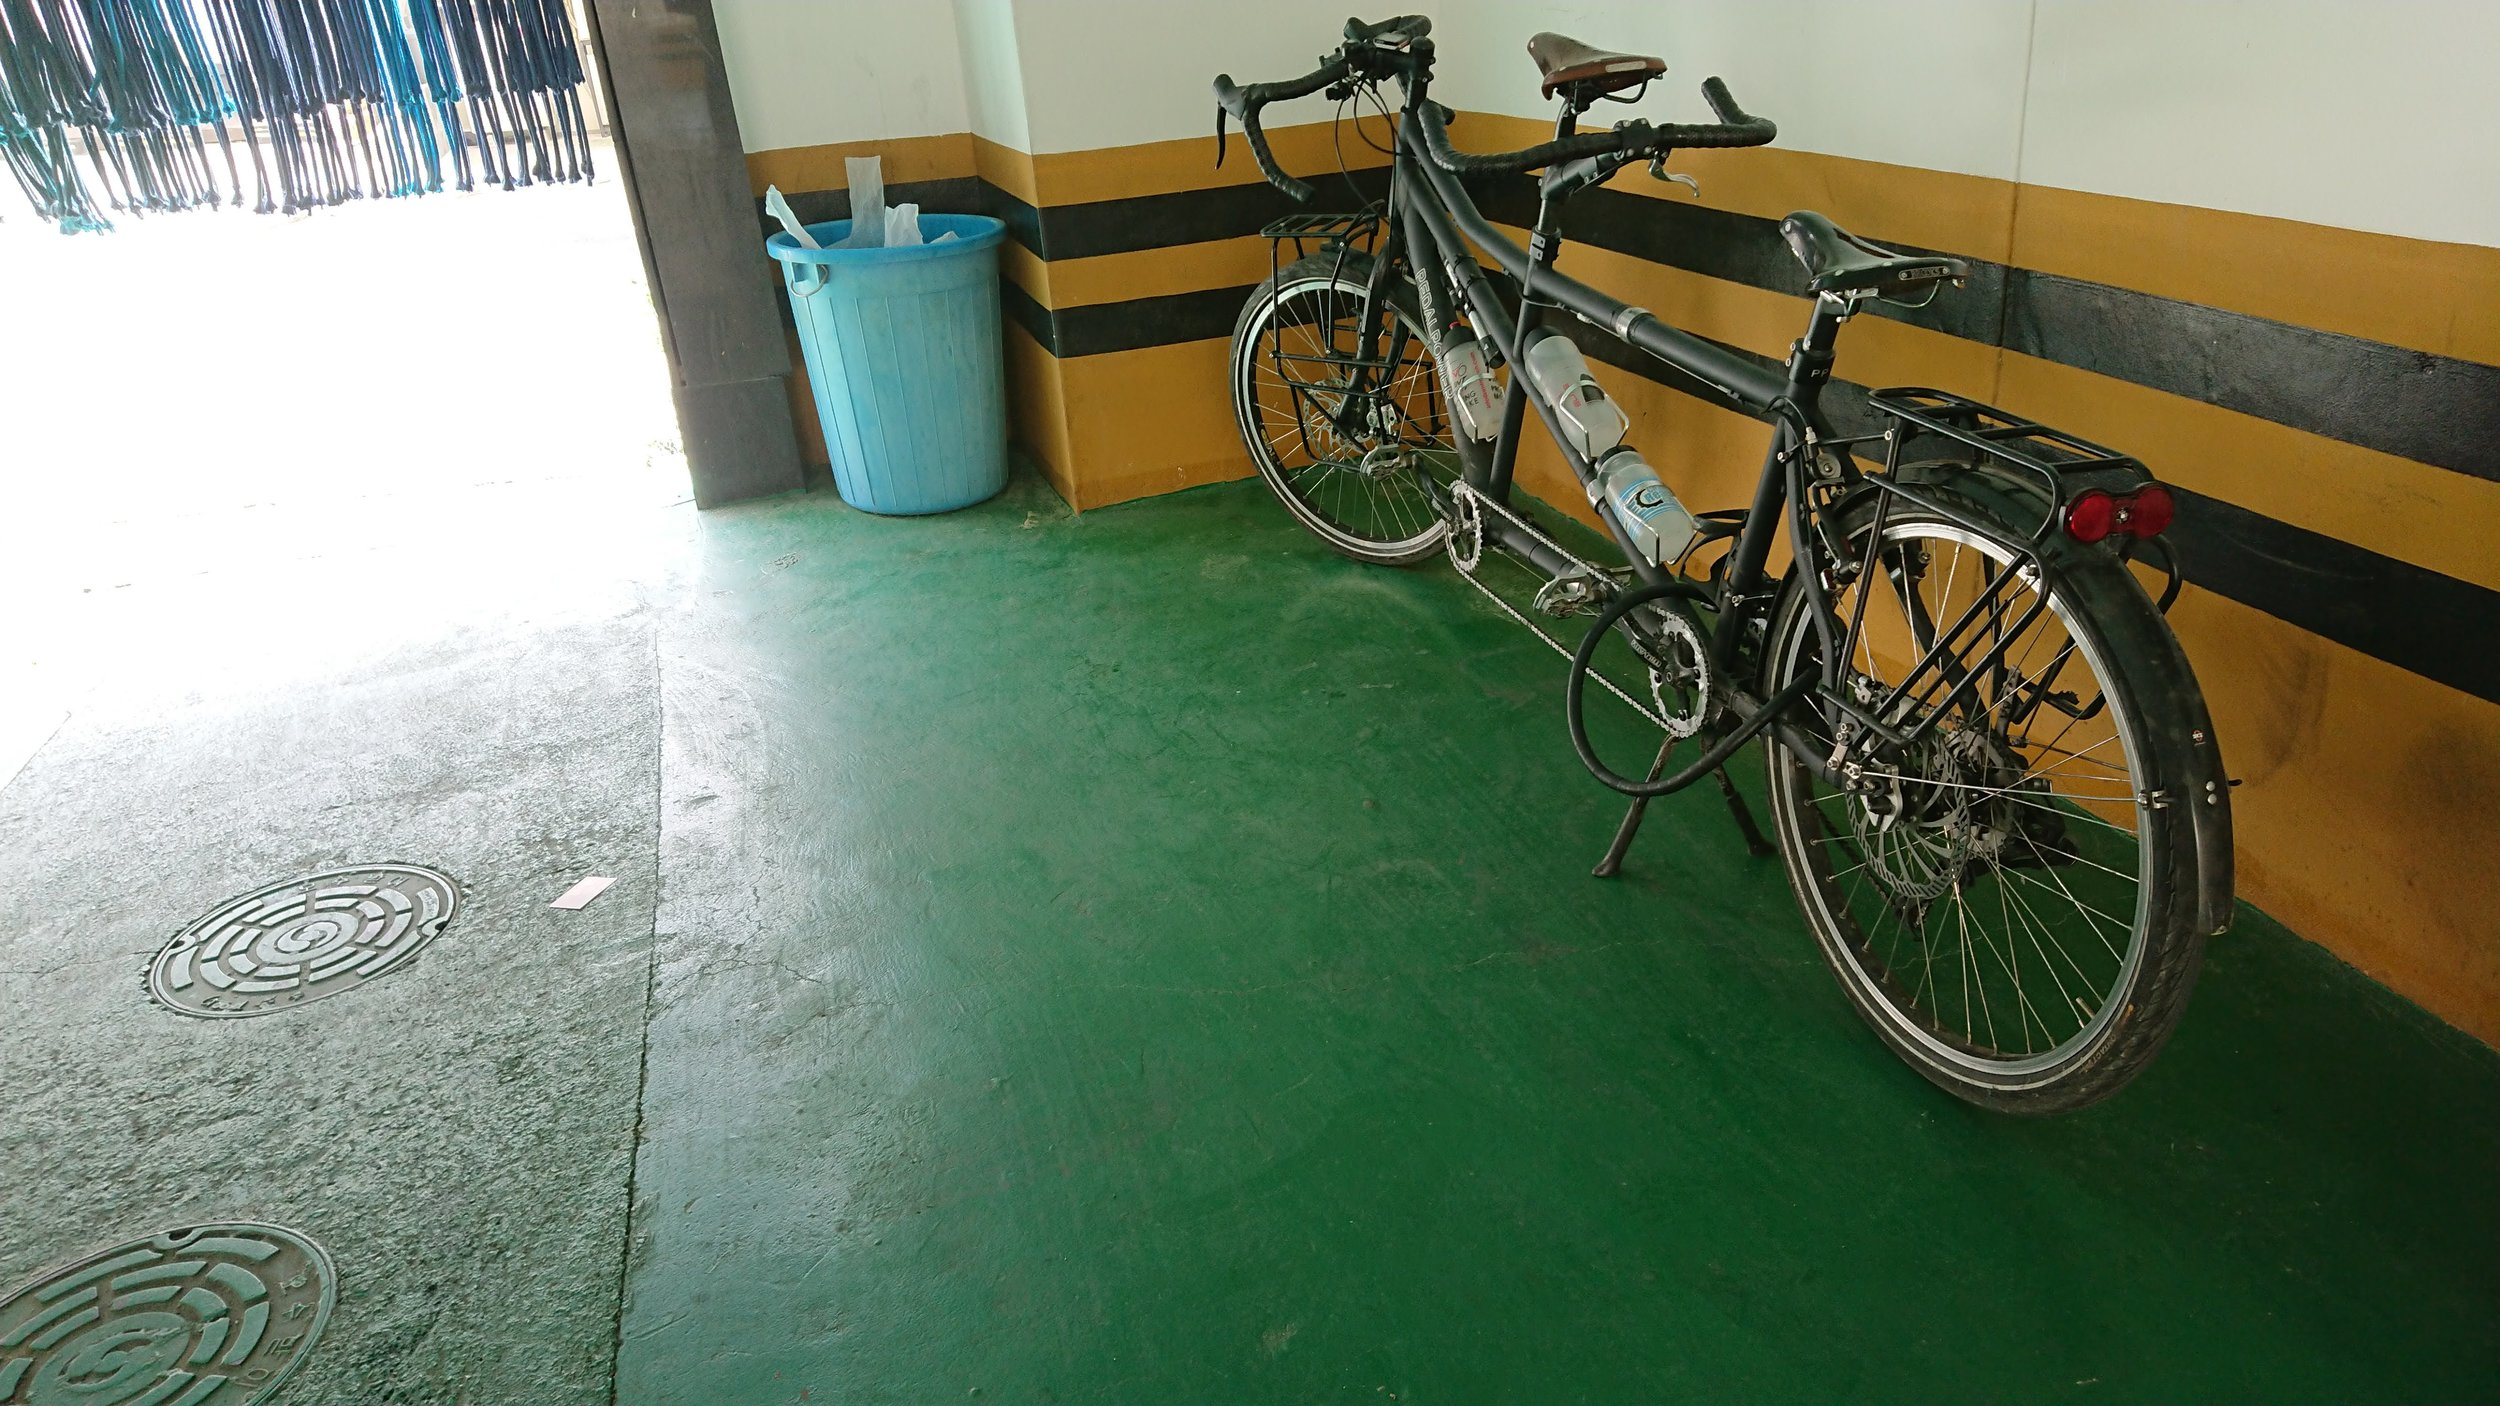 You can leave your bike in the covered parking garage directly underneath the motel for free.